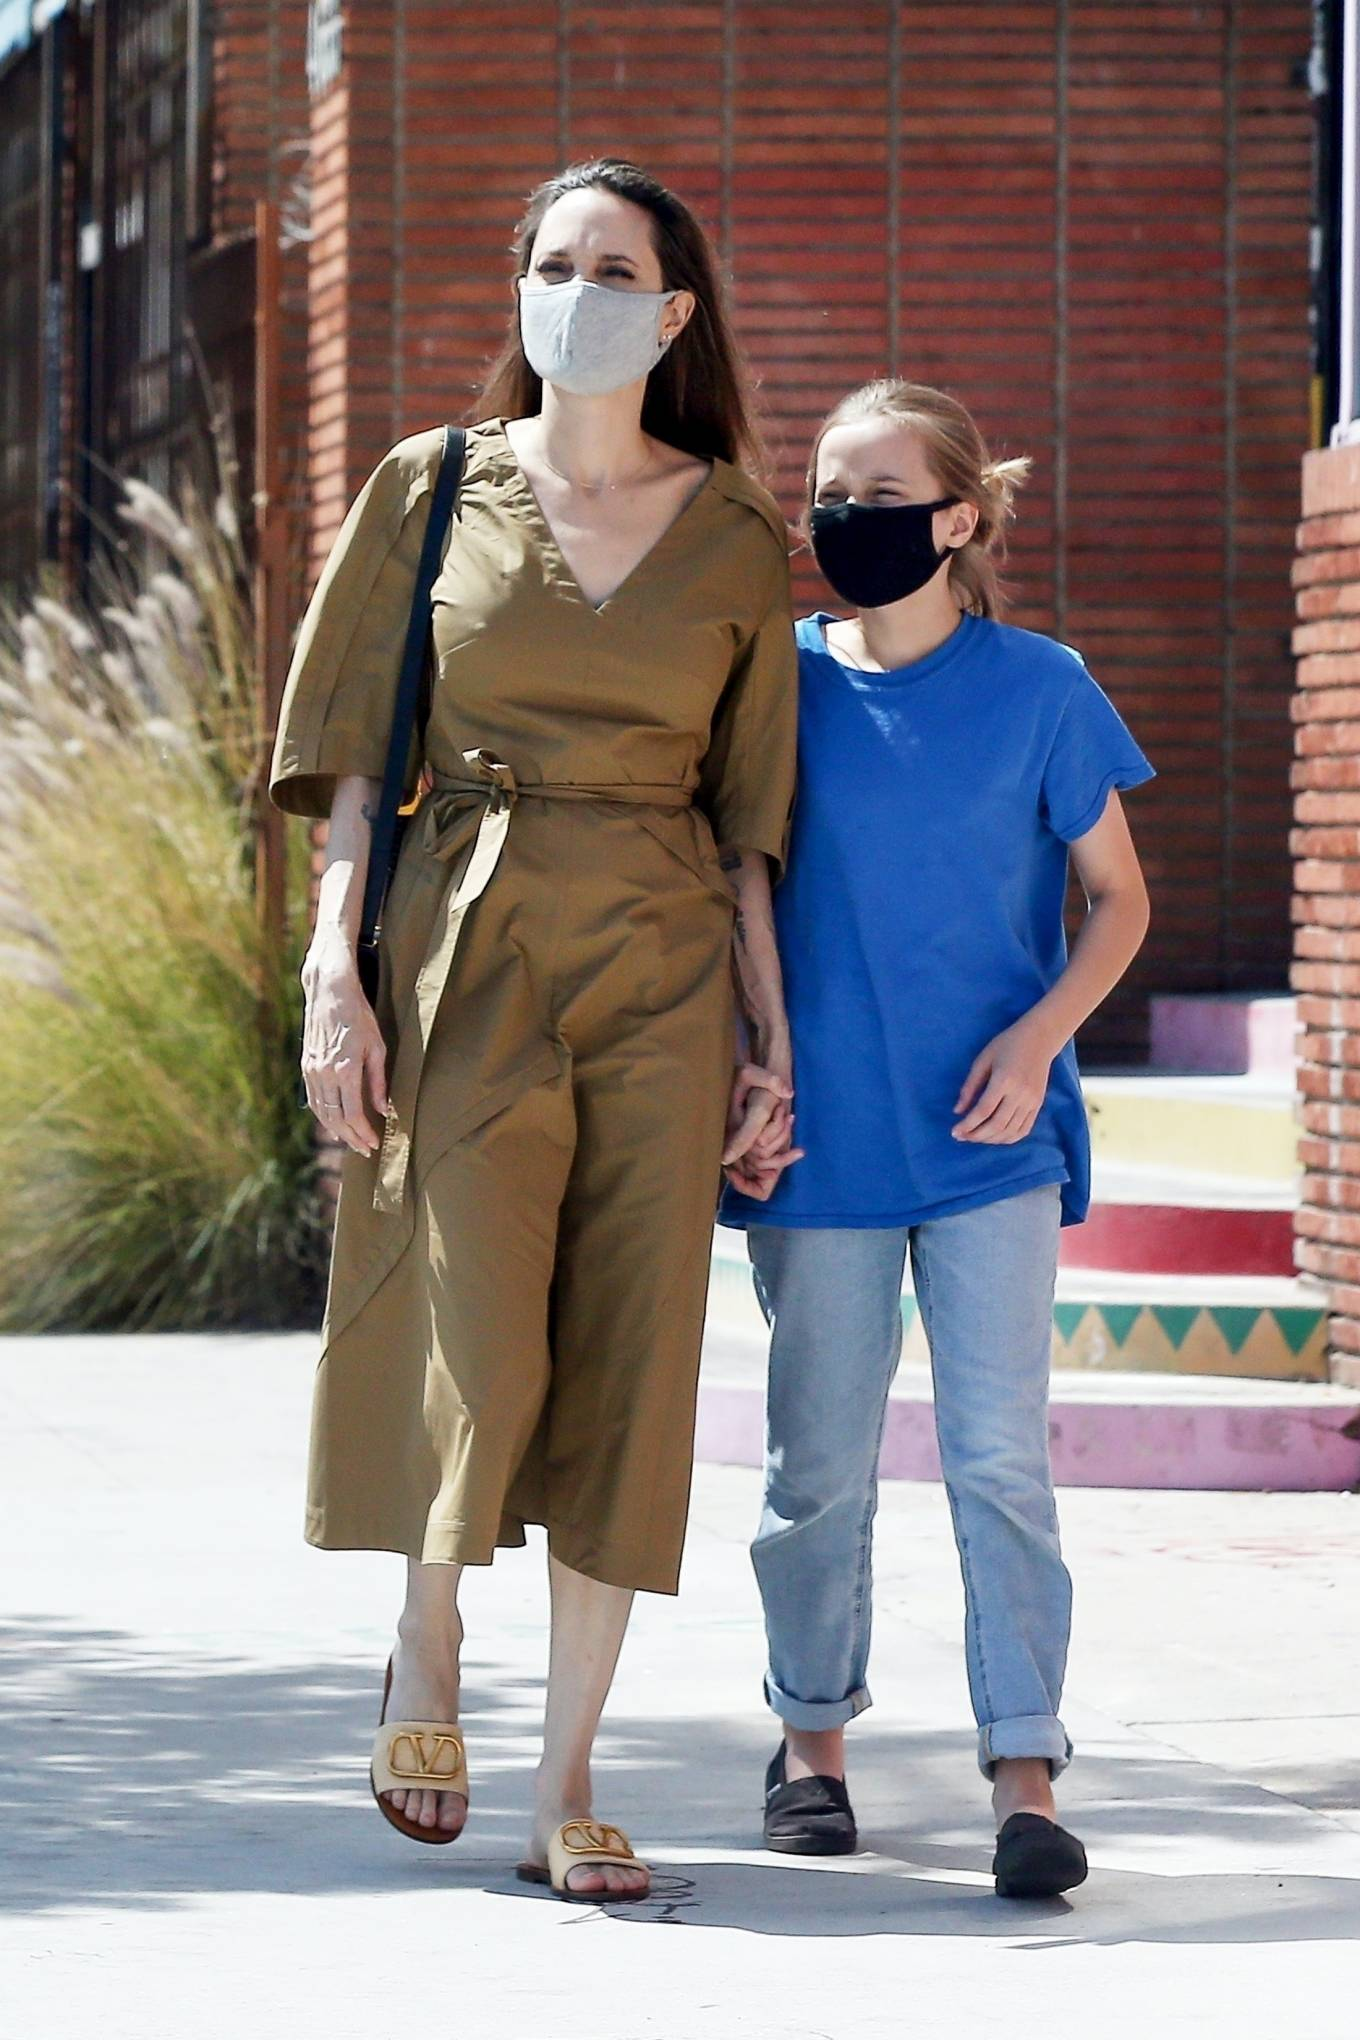 Angelina Jolie wearing brand logo Nude Dior open toe sandals with flat heel